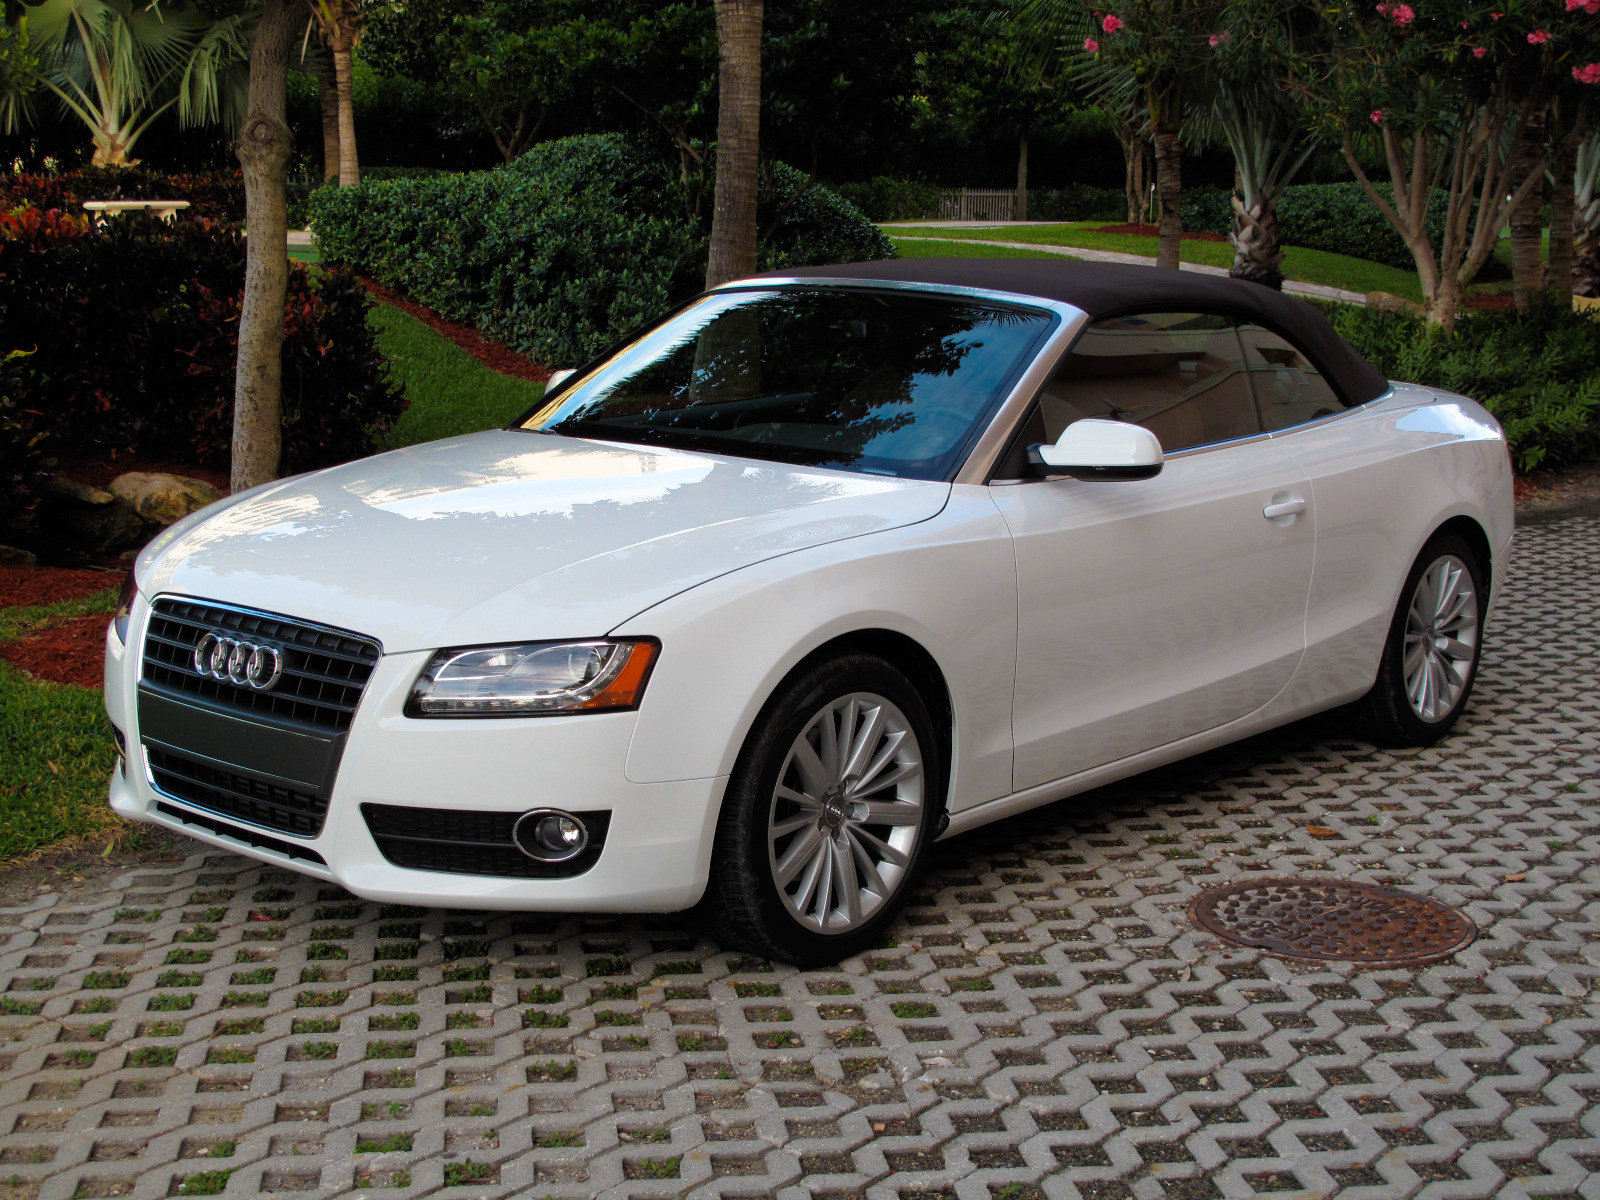 2010 audi a5 cabriolet picture 347459 car review top speed. Black Bedroom Furniture Sets. Home Design Ideas